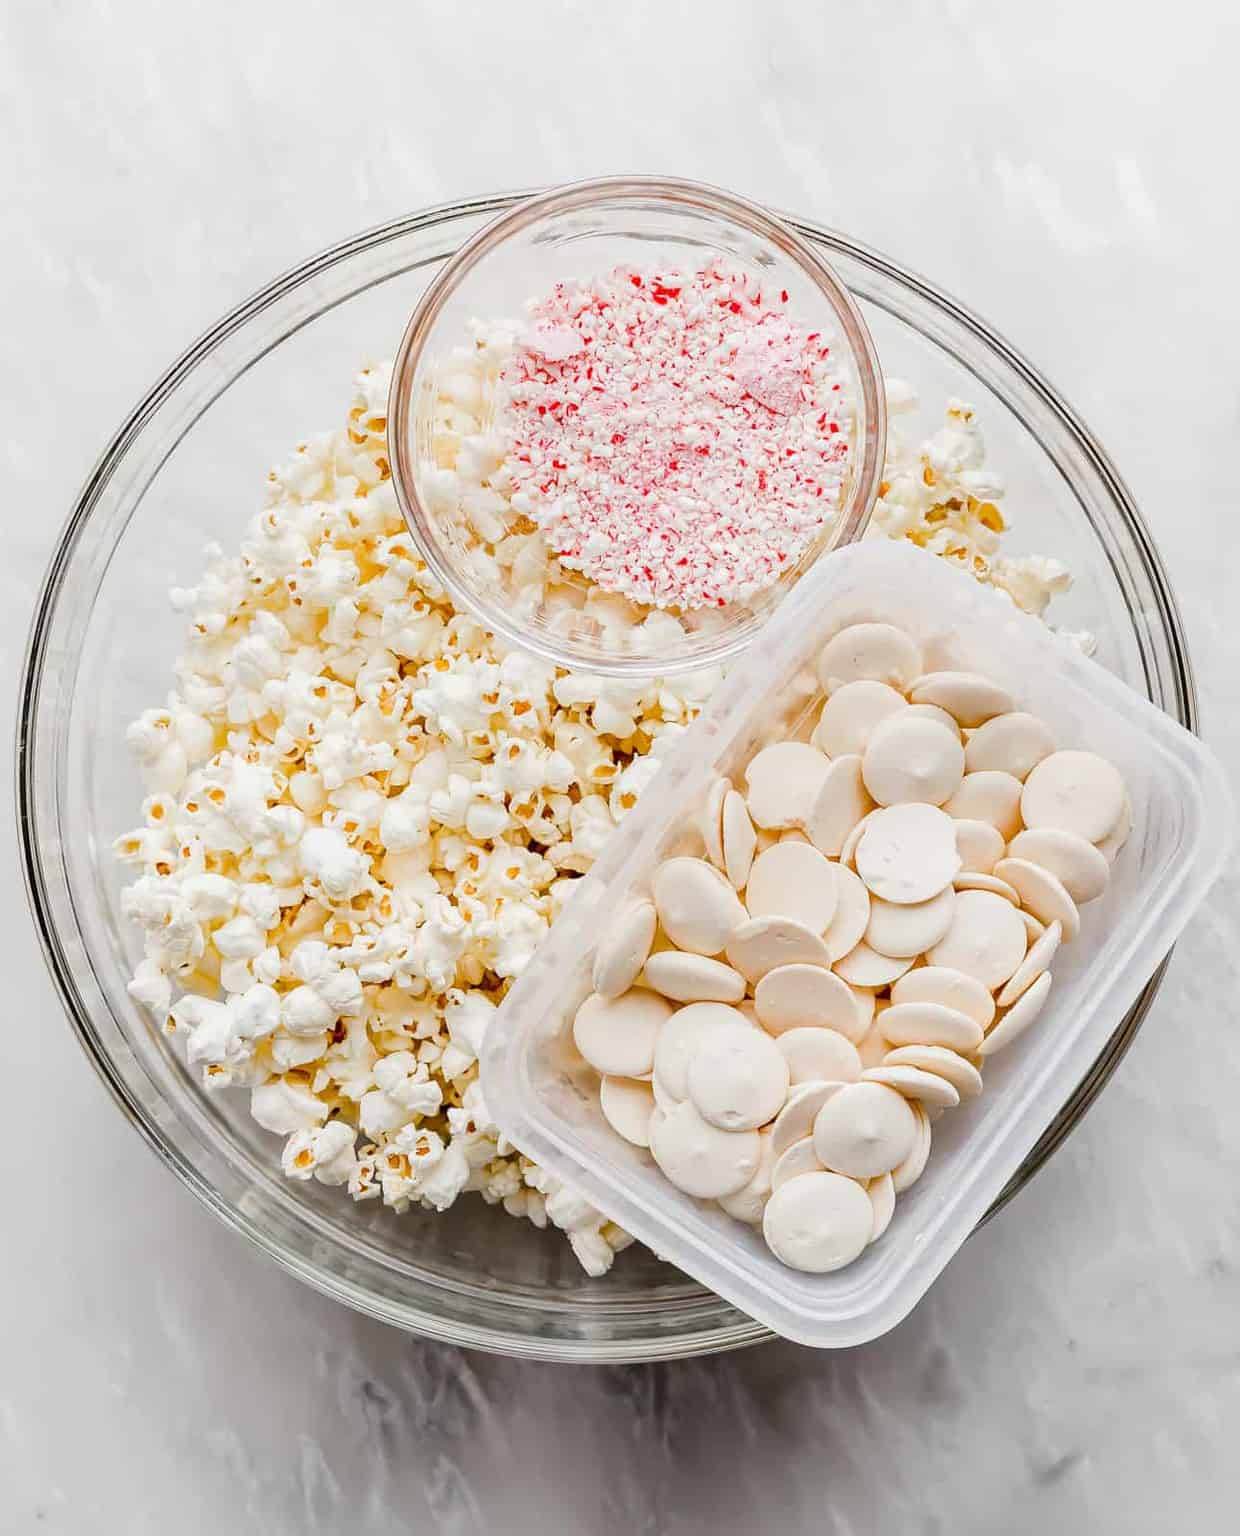 A large bowl of popcorn, a bowl of white candy melts, and a bowl of crushed candy canes.